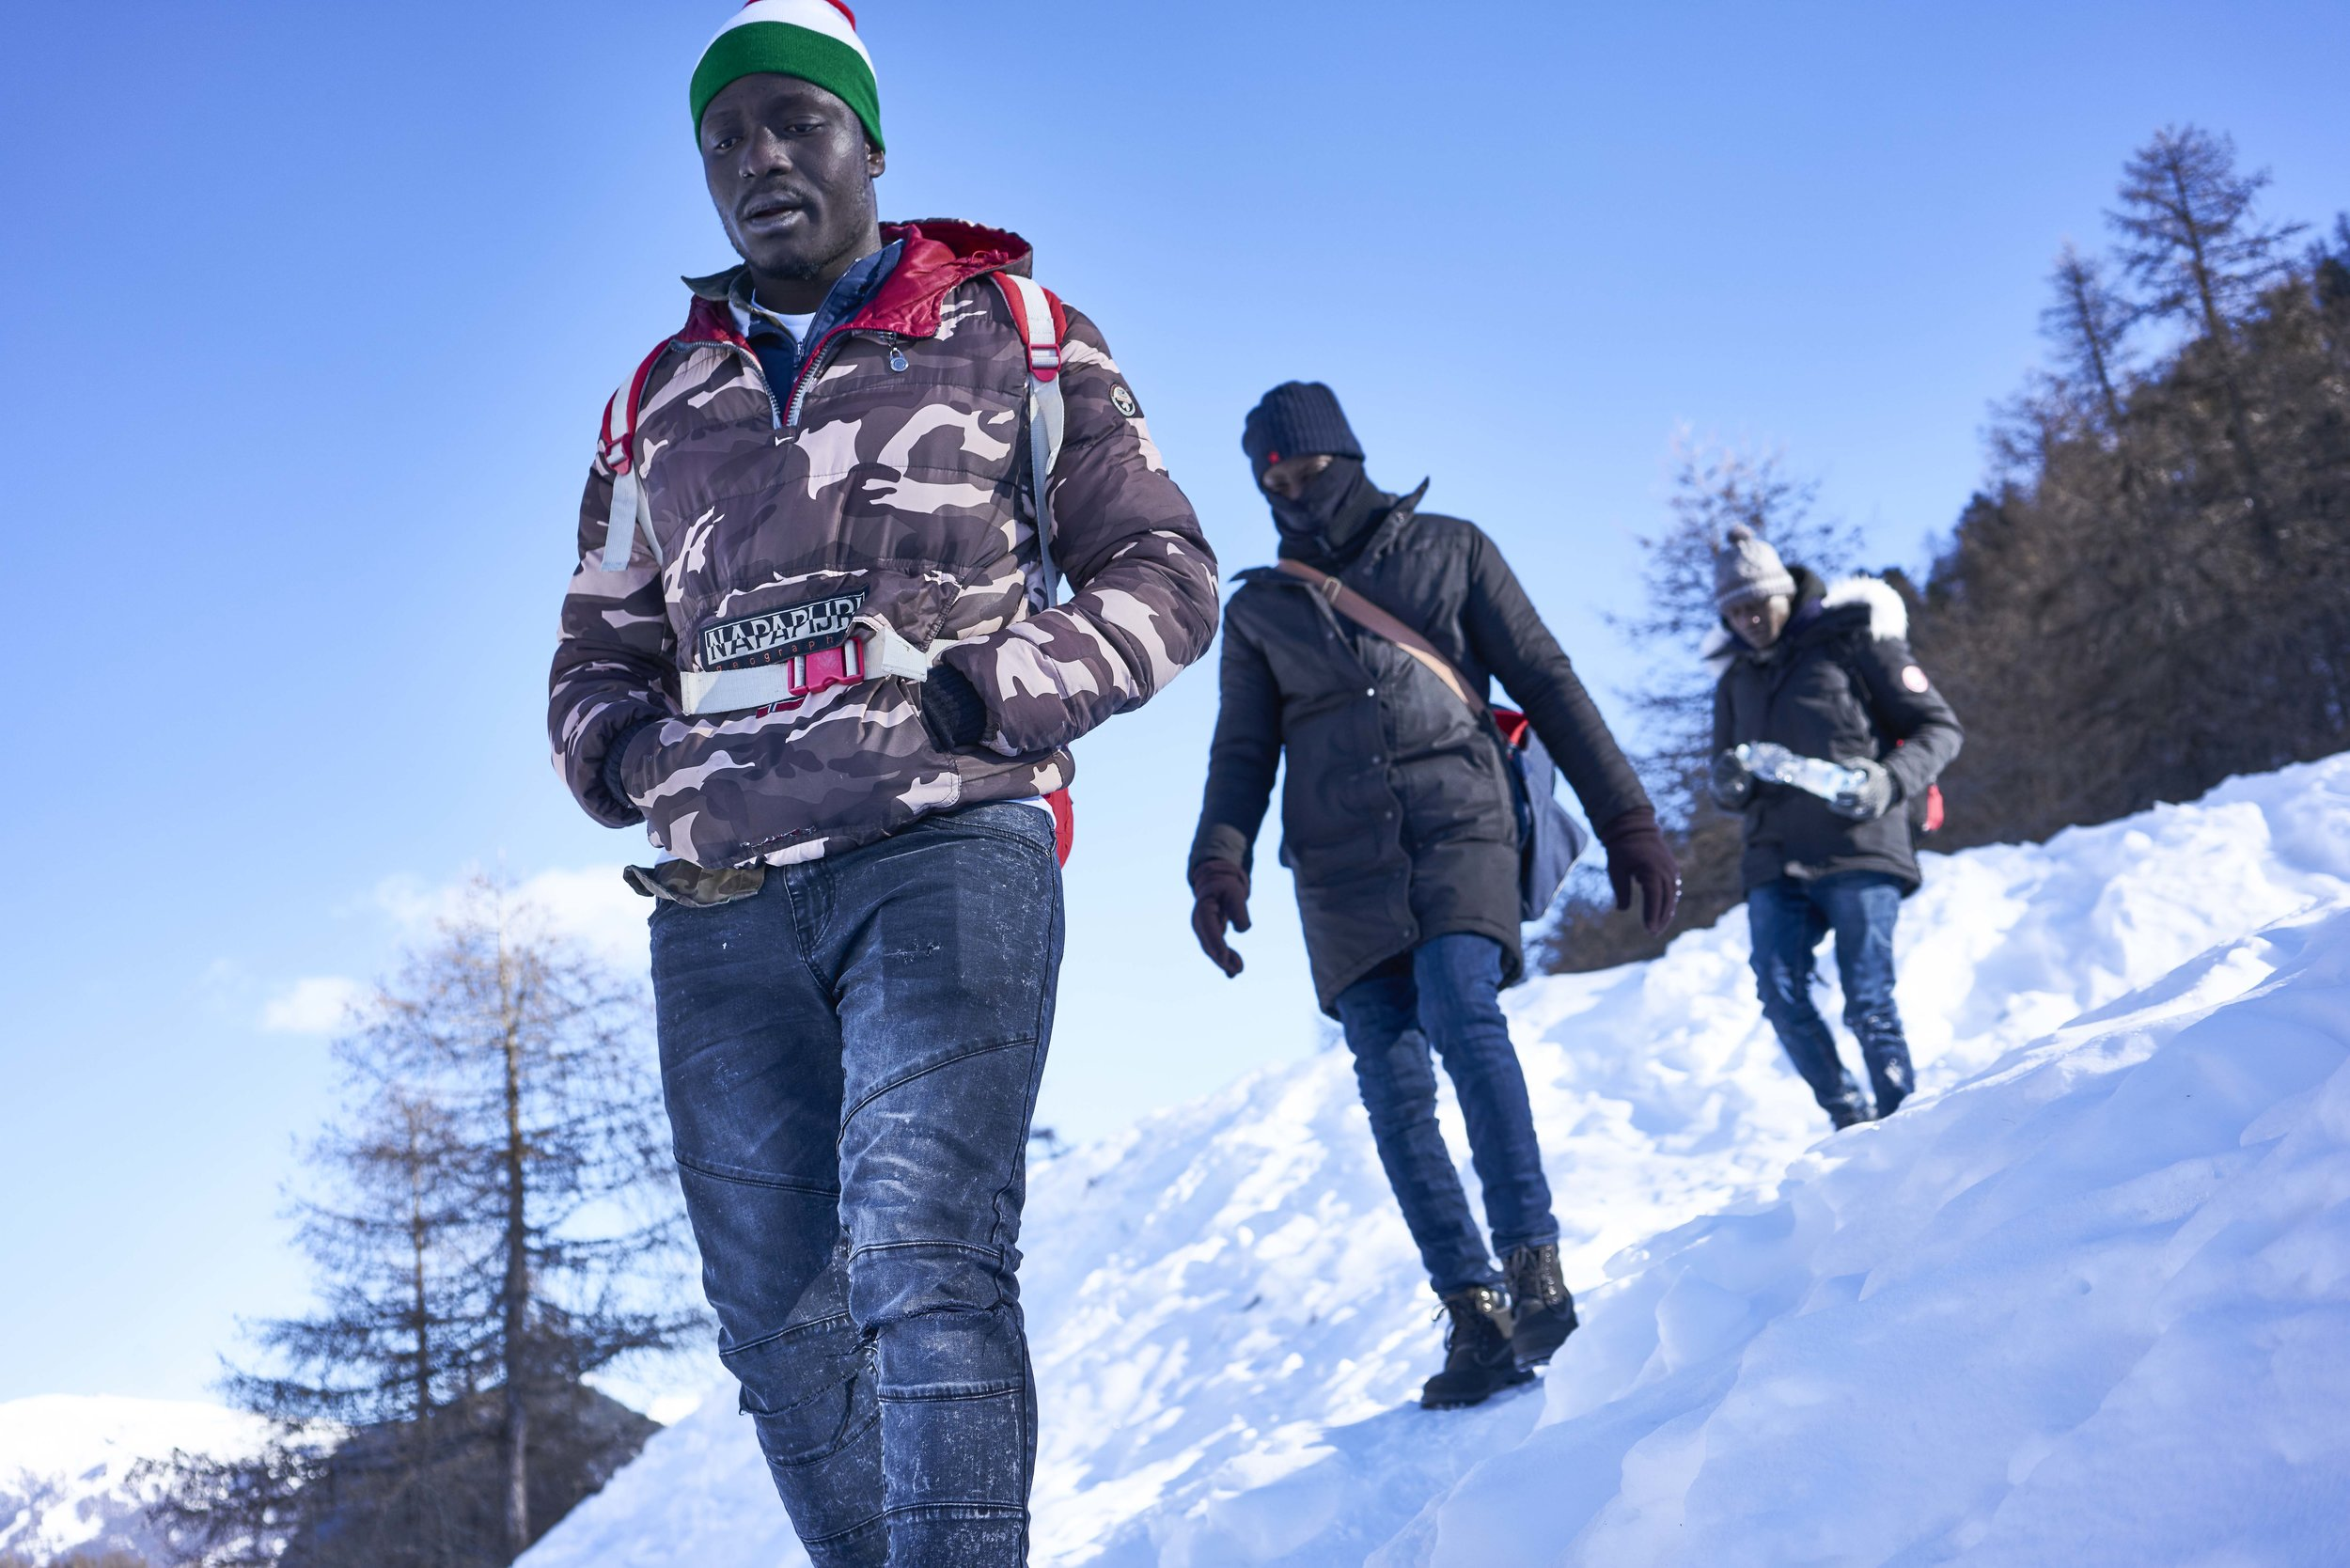 EPISODE 3 - In 2018 about five thousand people crossed the border between Italy and France passing through Bardonecchia and Colle della Scala. At least three people died along the way because of hypothermia or because they got lost or fell into a crevasse. In the first months of 2019, every night between ten and fifteen migrants are rescued on the paths that connect Claviere, in Italy, to the Montgenèvre pass, in France. In most cases the French gendarmerie stop them, bringing them back to the Italian side, operating illegal group rejections without evaluating their asylum applications. But after a few days the boys try to cross the border again.